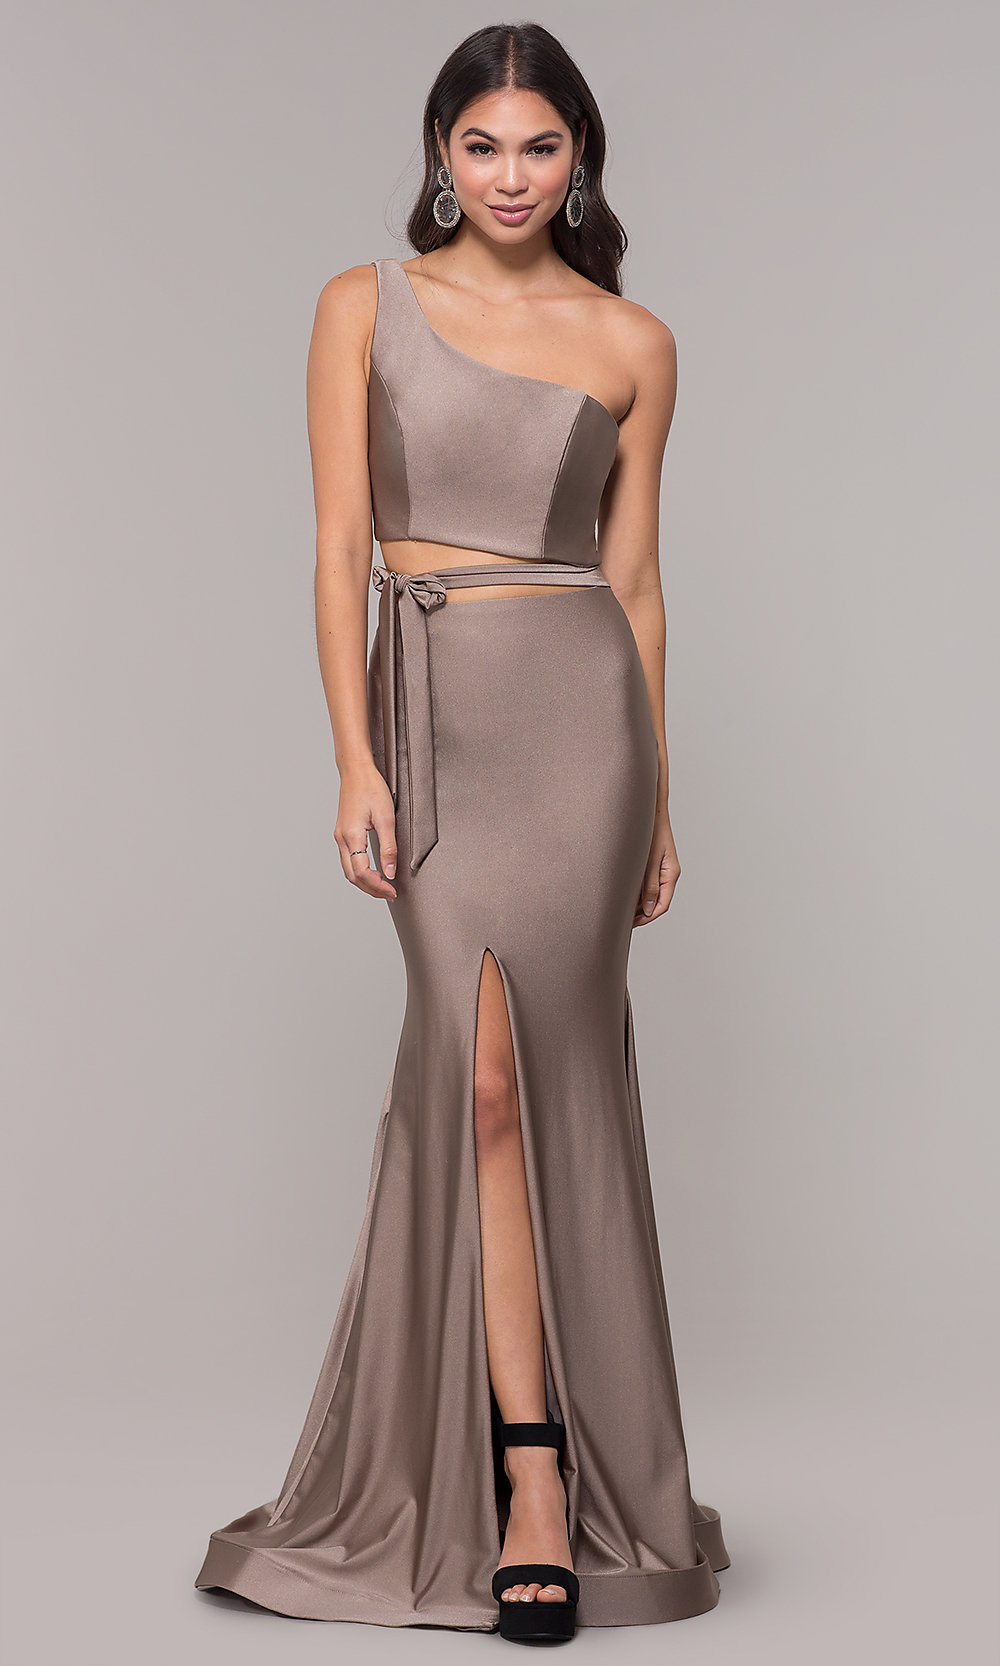 3e48540e0d2 Long One-Shoulder Prom Dress with Side Cut Out